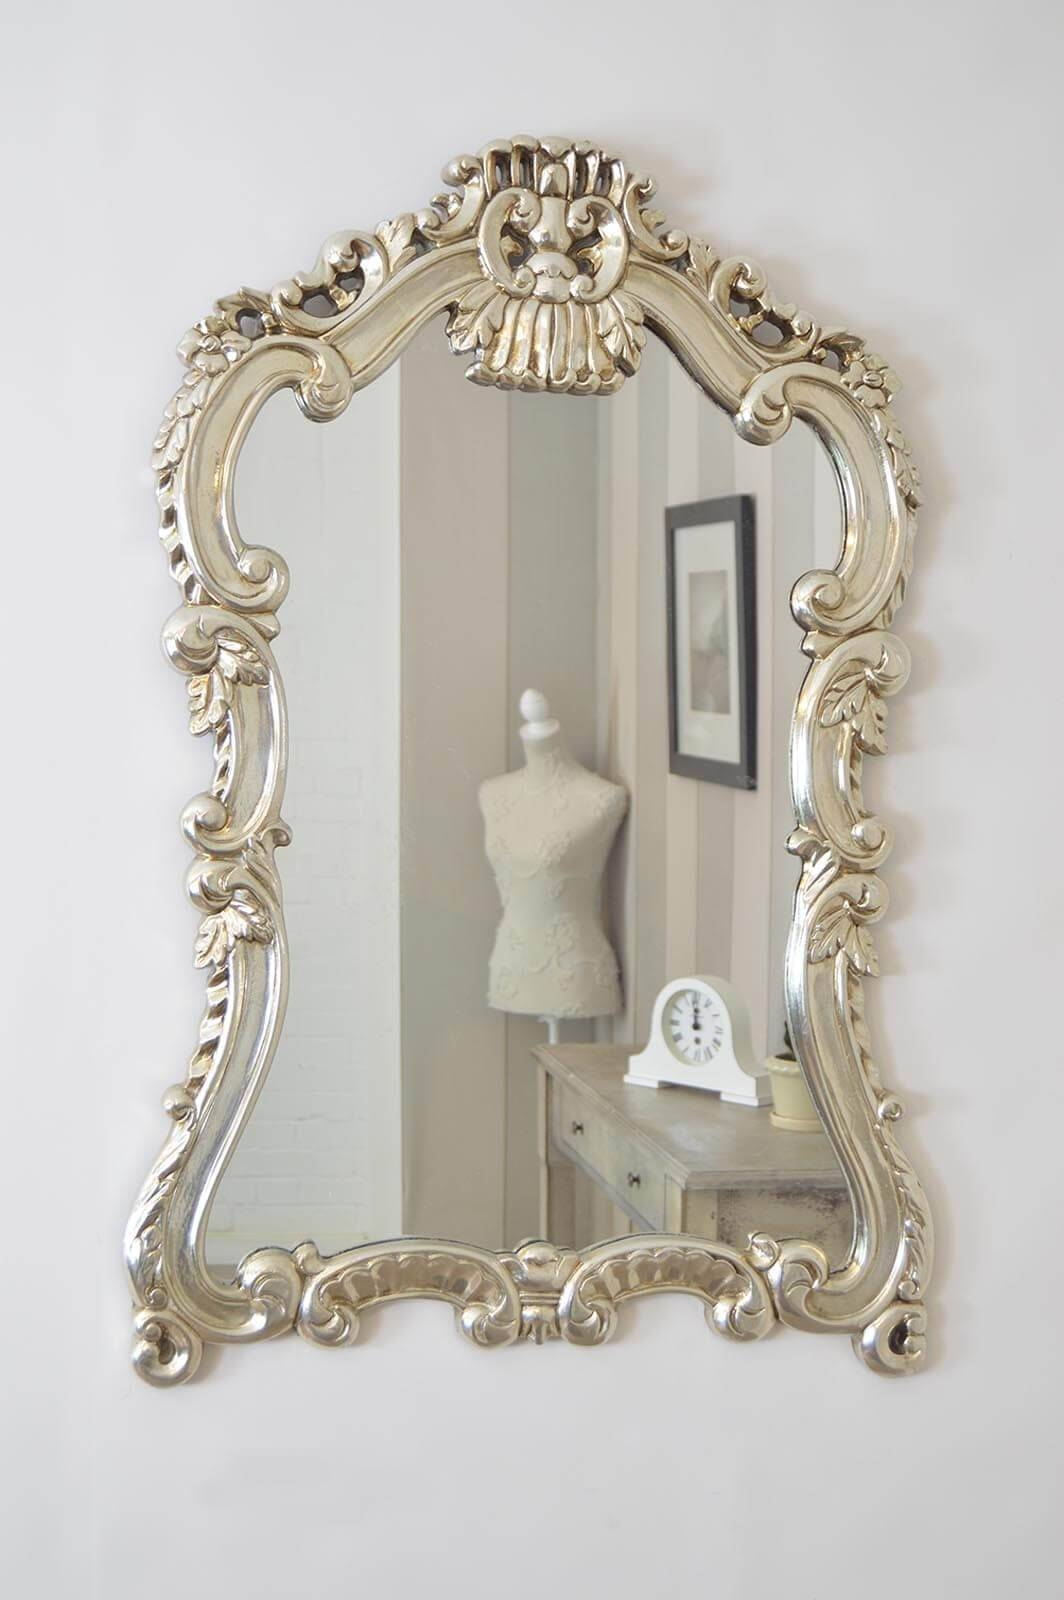 Decorative Ornate Mirrors : Wall Vs Floor, Which One Better With Ornate Wall Mirrors (View 11 of 25)